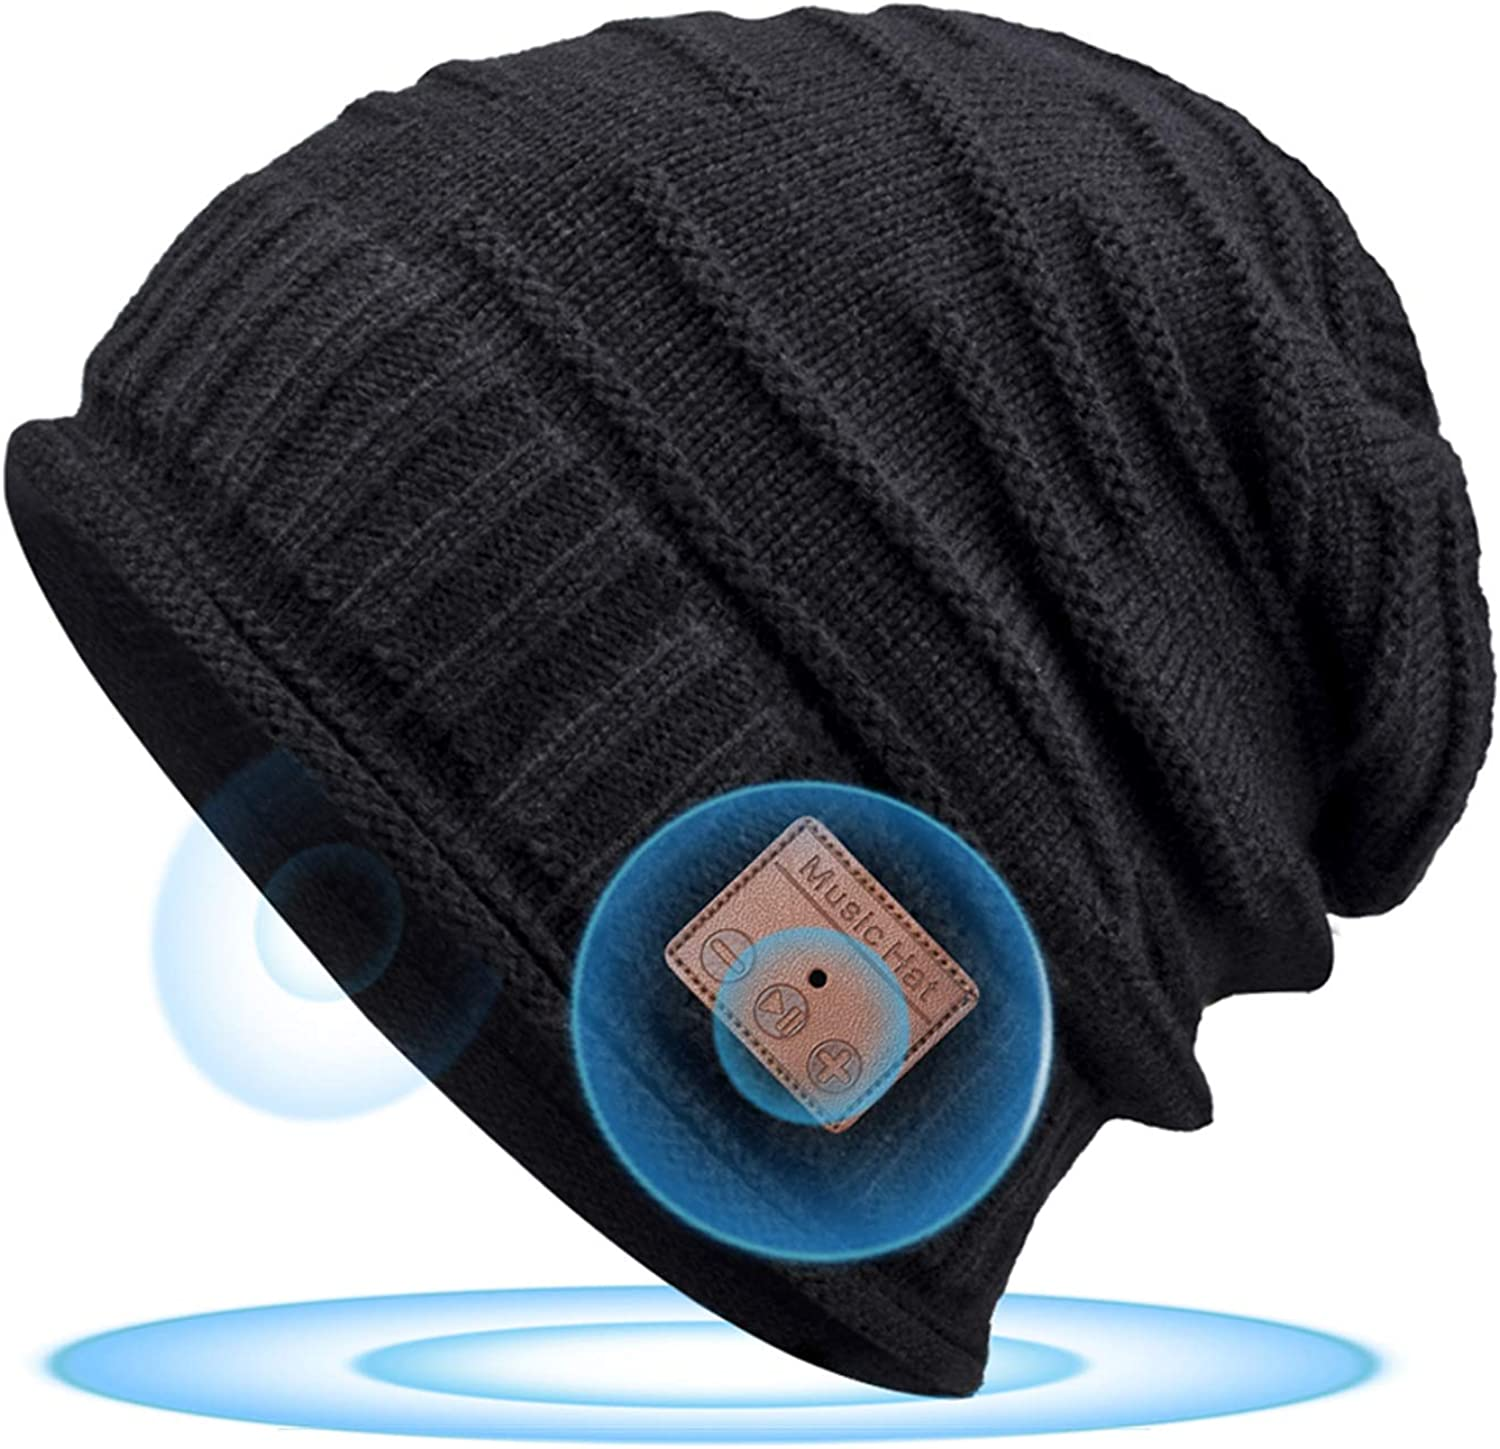 Bluetooth Beanie for Men Bluetooth Hat, Stocking Stuffers for Men Women, Birthday for Men Women Husband for Teenage Boys Teen, Cool Tech Gifts for Him, Presents for Men